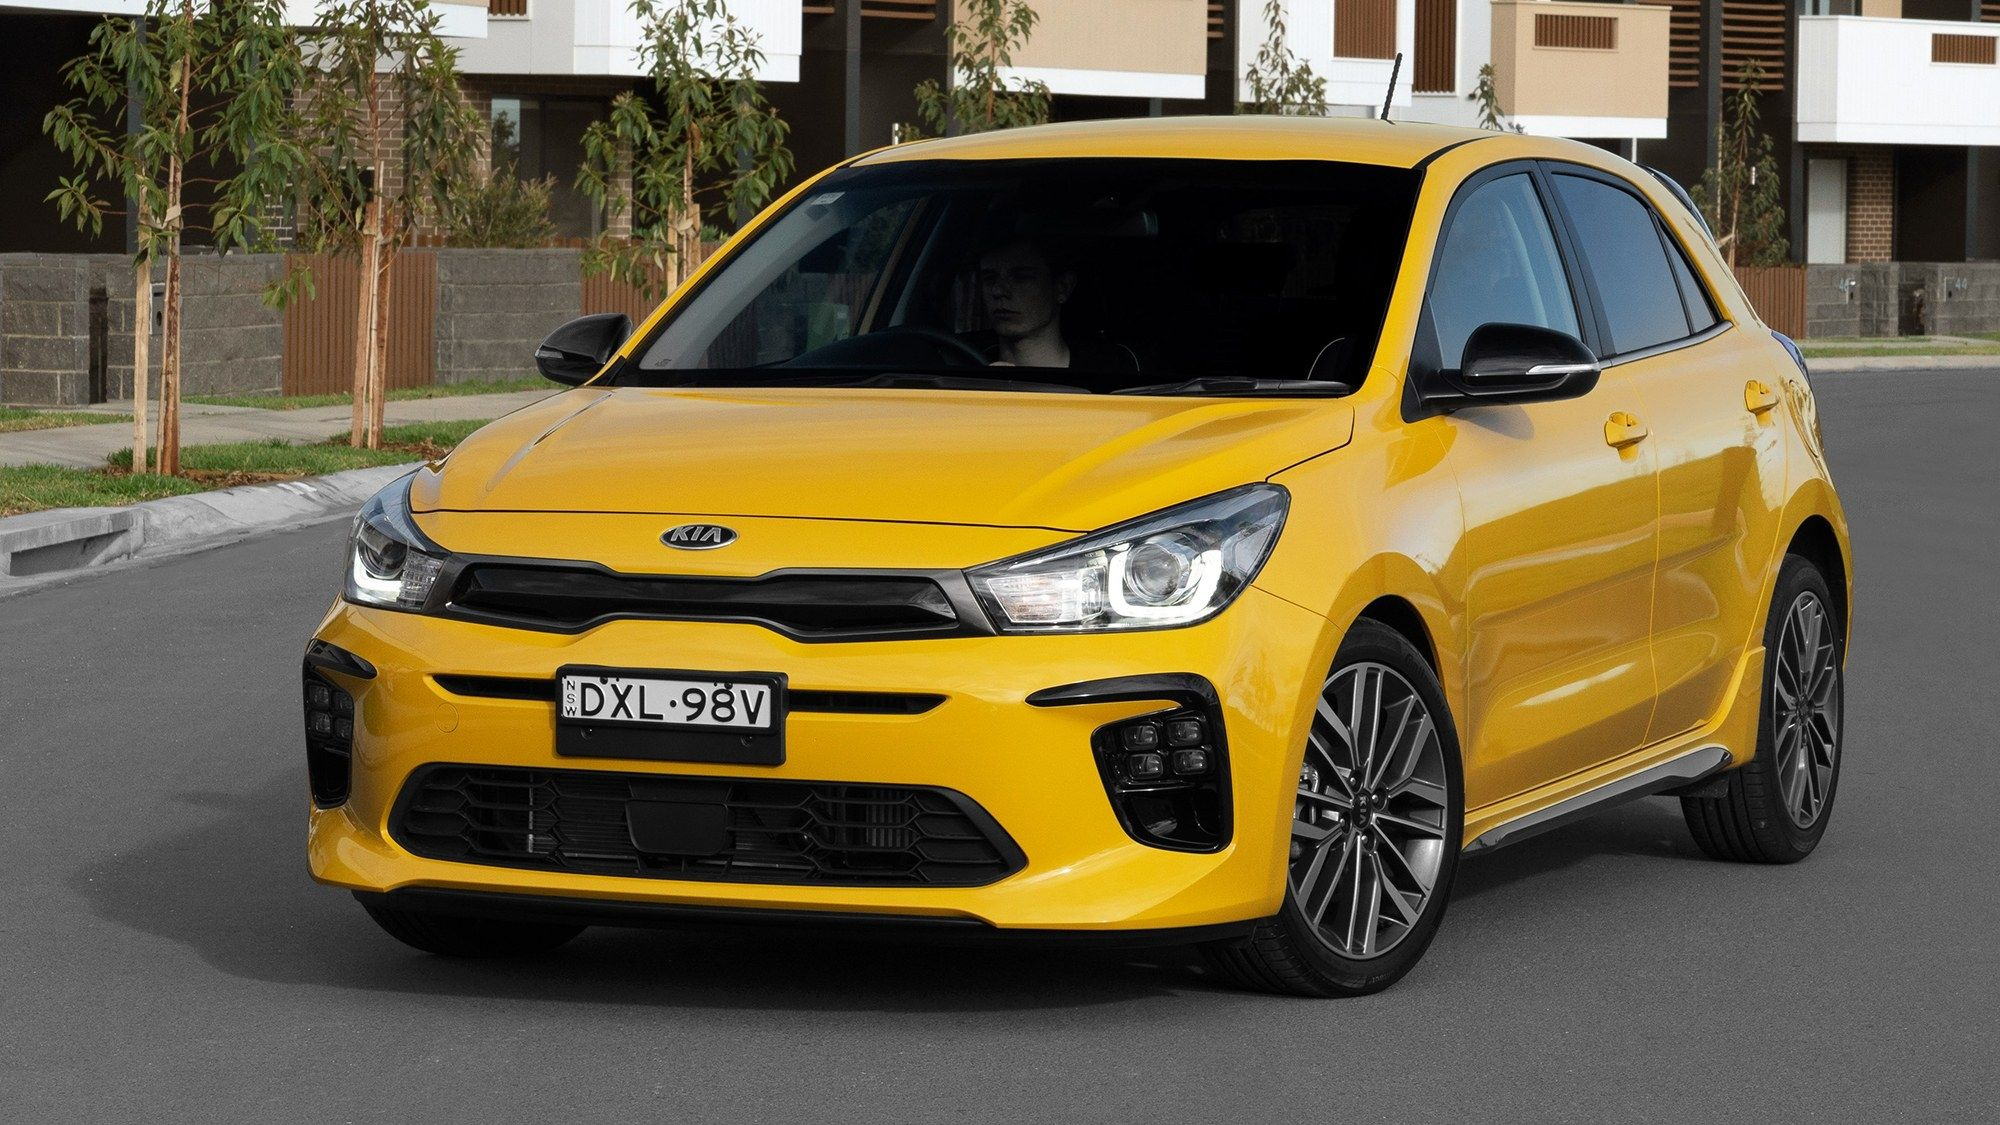 2019 Kia Rio Pricing And Specs Automotive News Kia Rio Kia